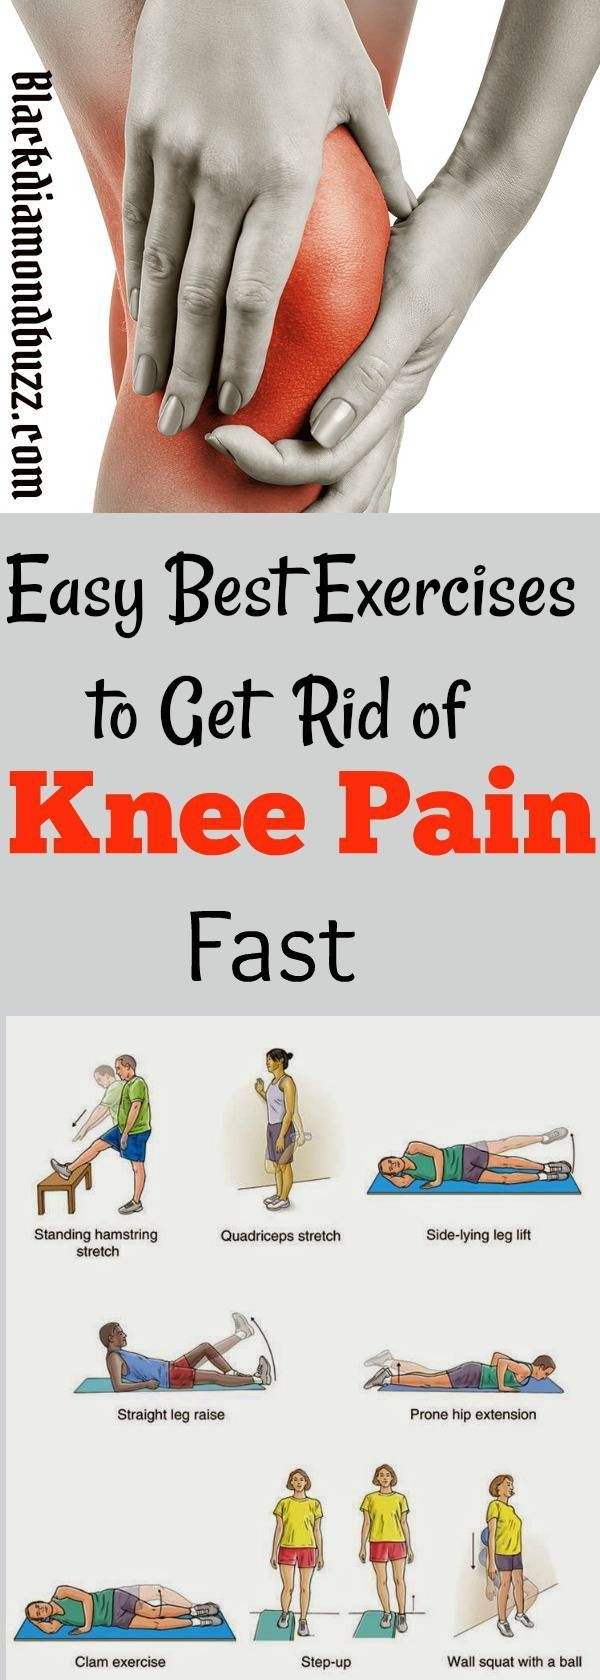 Knee pain diagnosis chart - Best 25 Knee Injury Treatment Ideas On Pinterest Knee Pain Physical Therapy And Ligament Tear In Knee